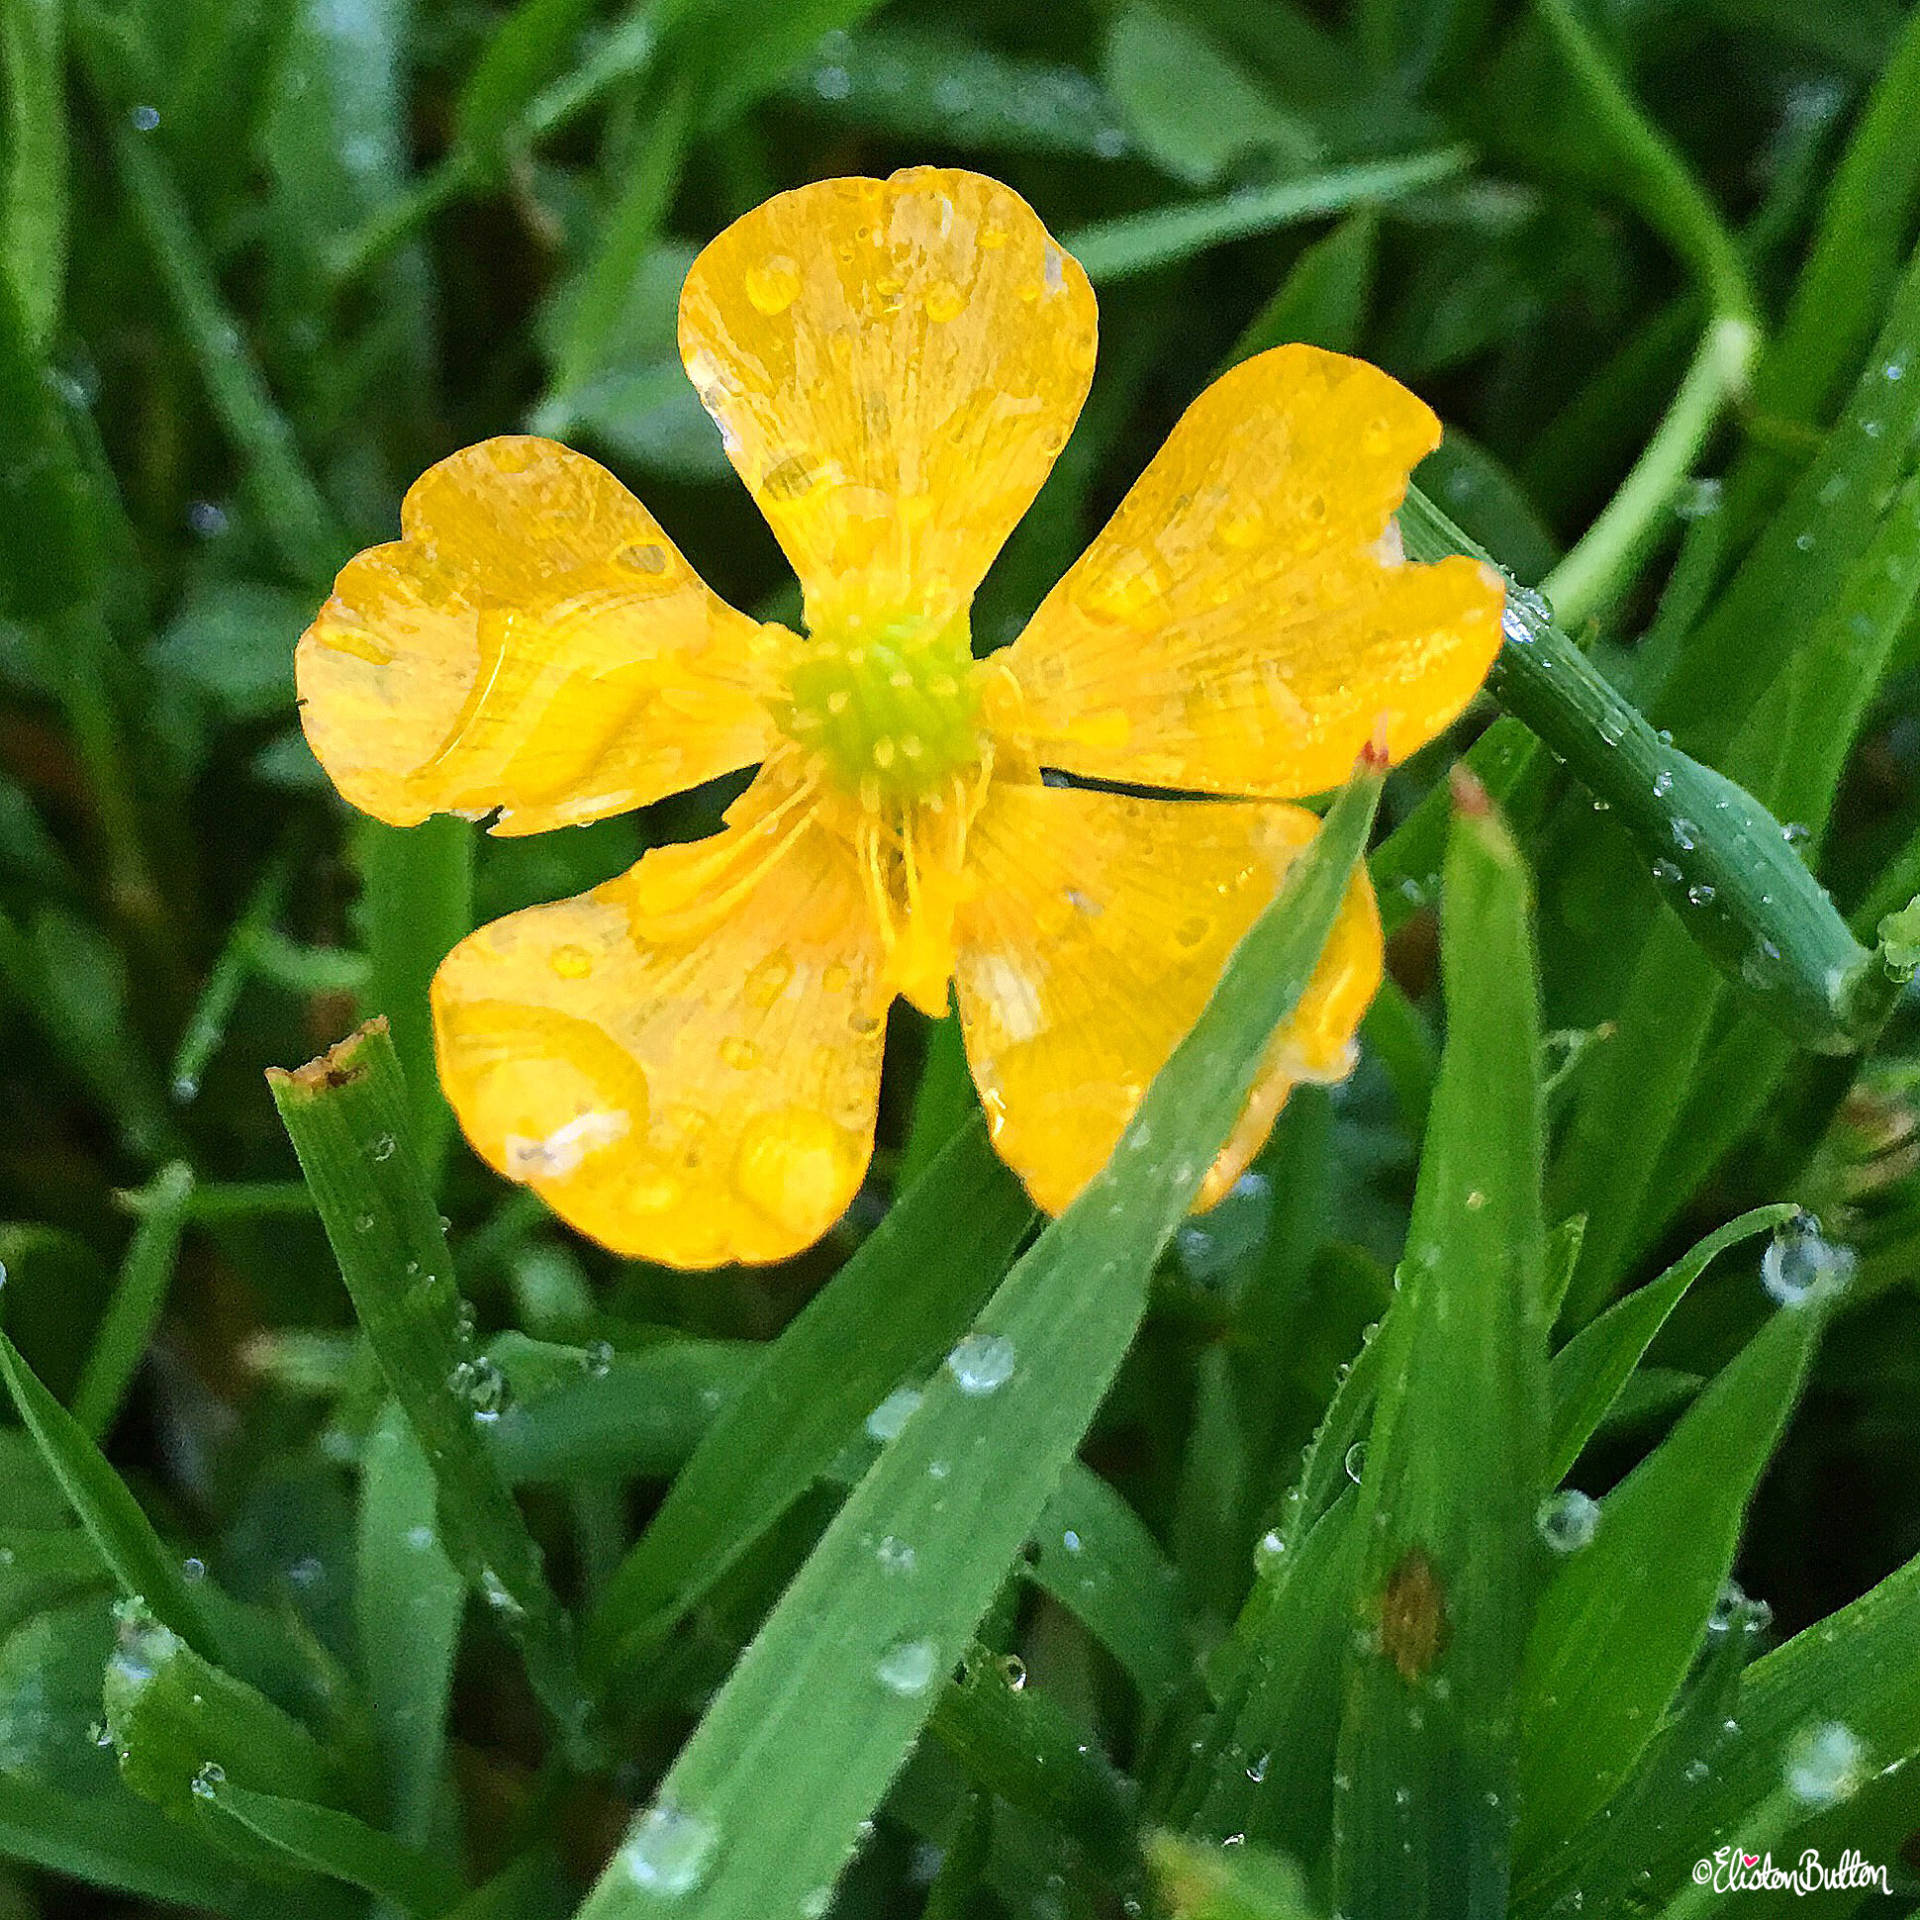 Day 20 - Water - Wter Drops on a Buttercup - Photo-a-Day – June 2016 at www.elistonbutton.com - Eliston Button - That Crafty Kid – Art, Design, Craft & Adventure.